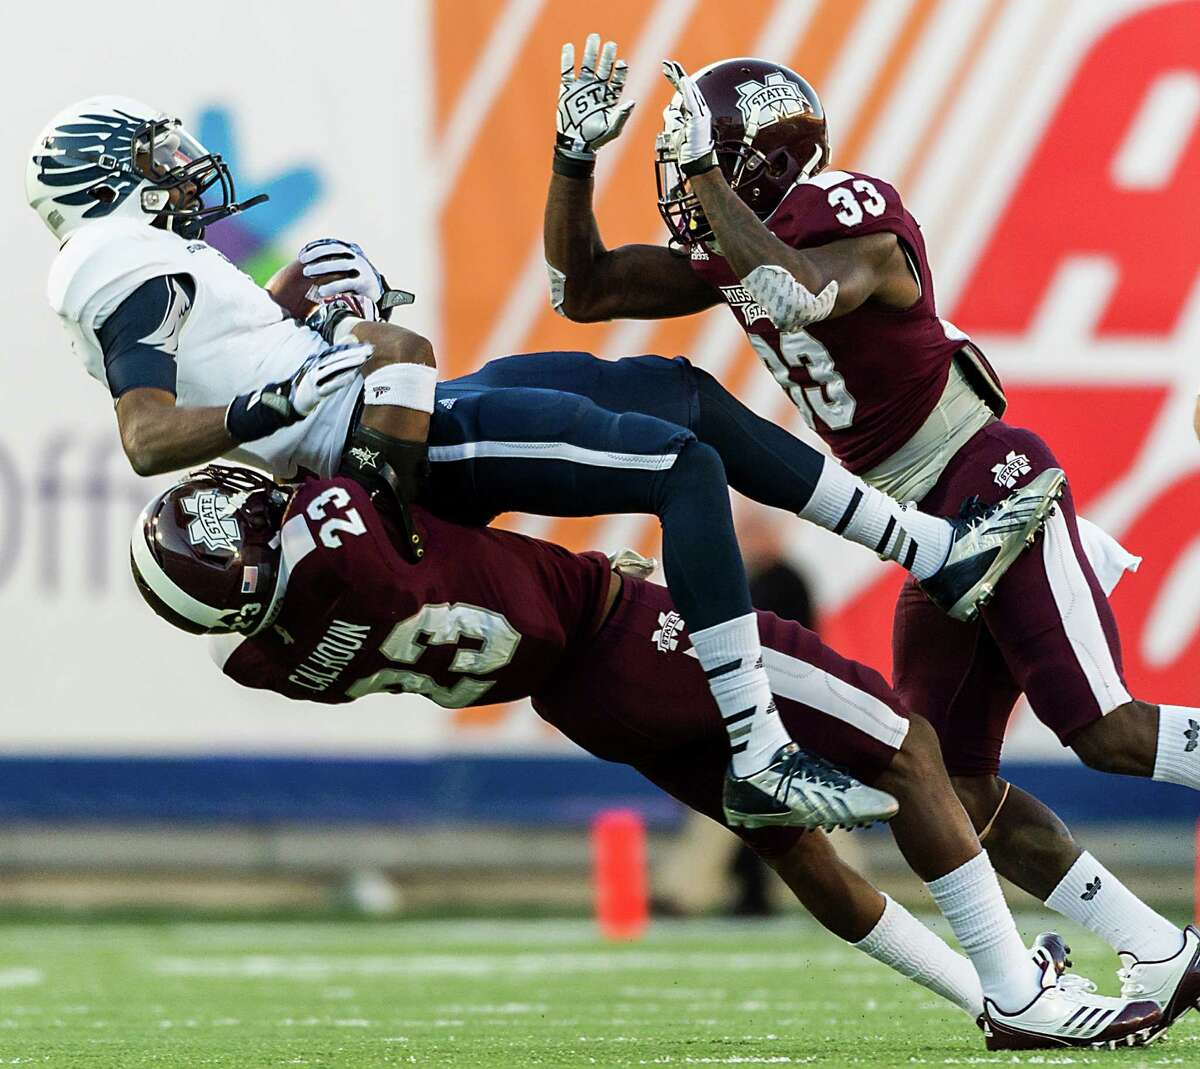 The finale of Rice's conference-title season proves to be a letdown for receiver Dennis Parks and the Owls.